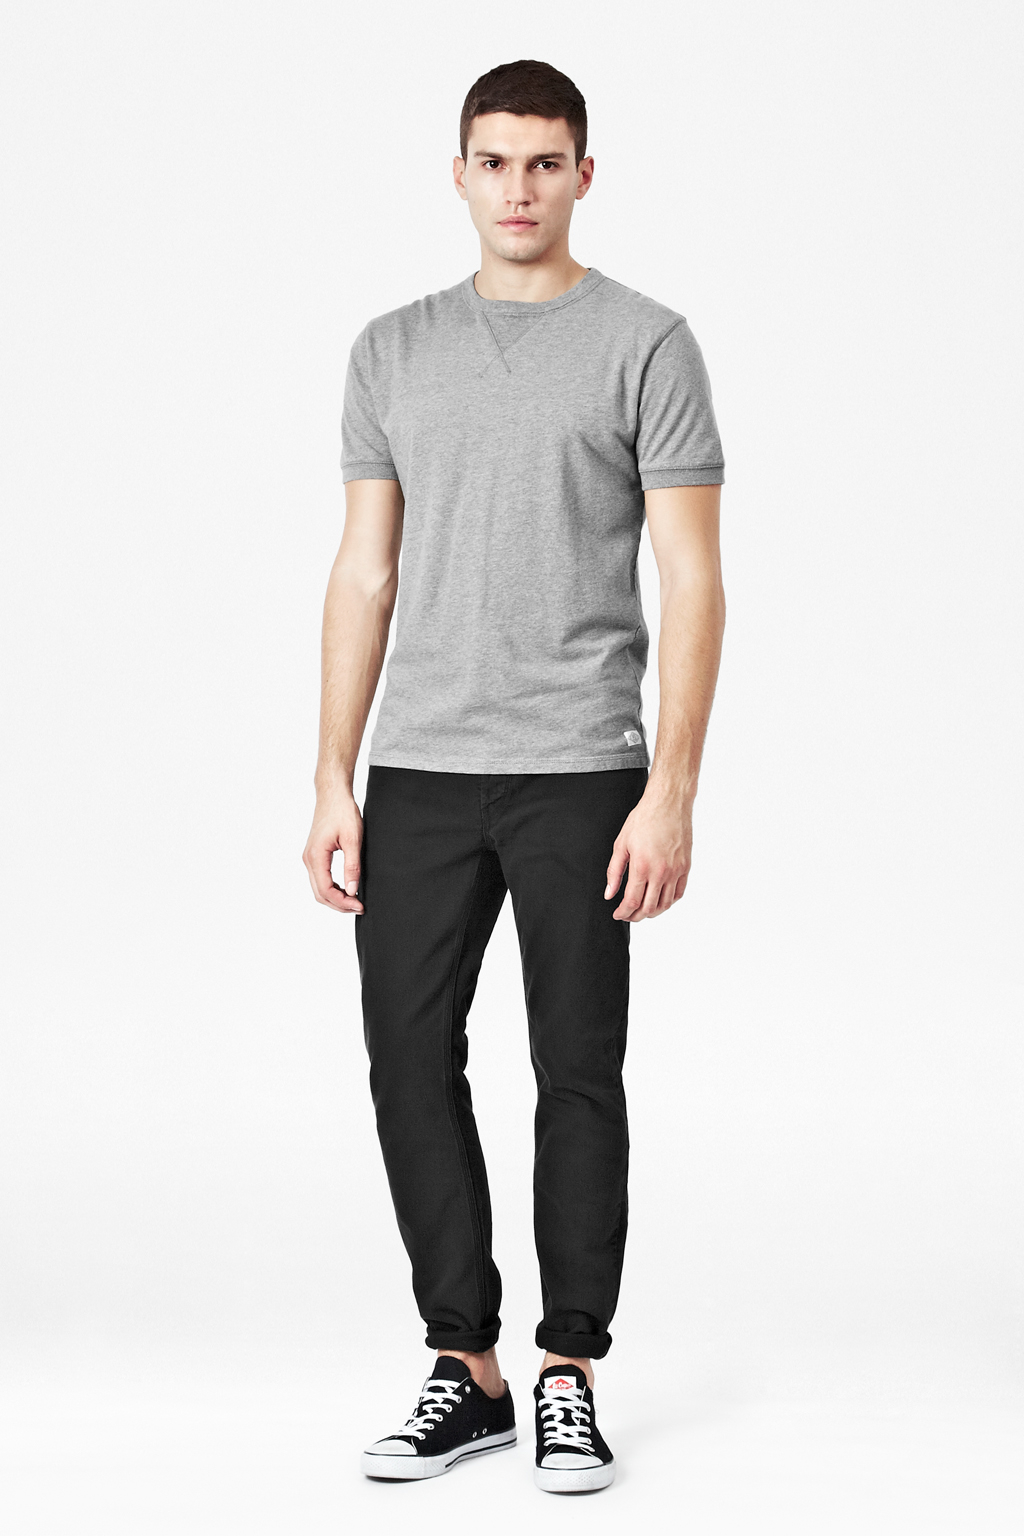 French Connection Lightweight Sweater Tshirt In Gray For